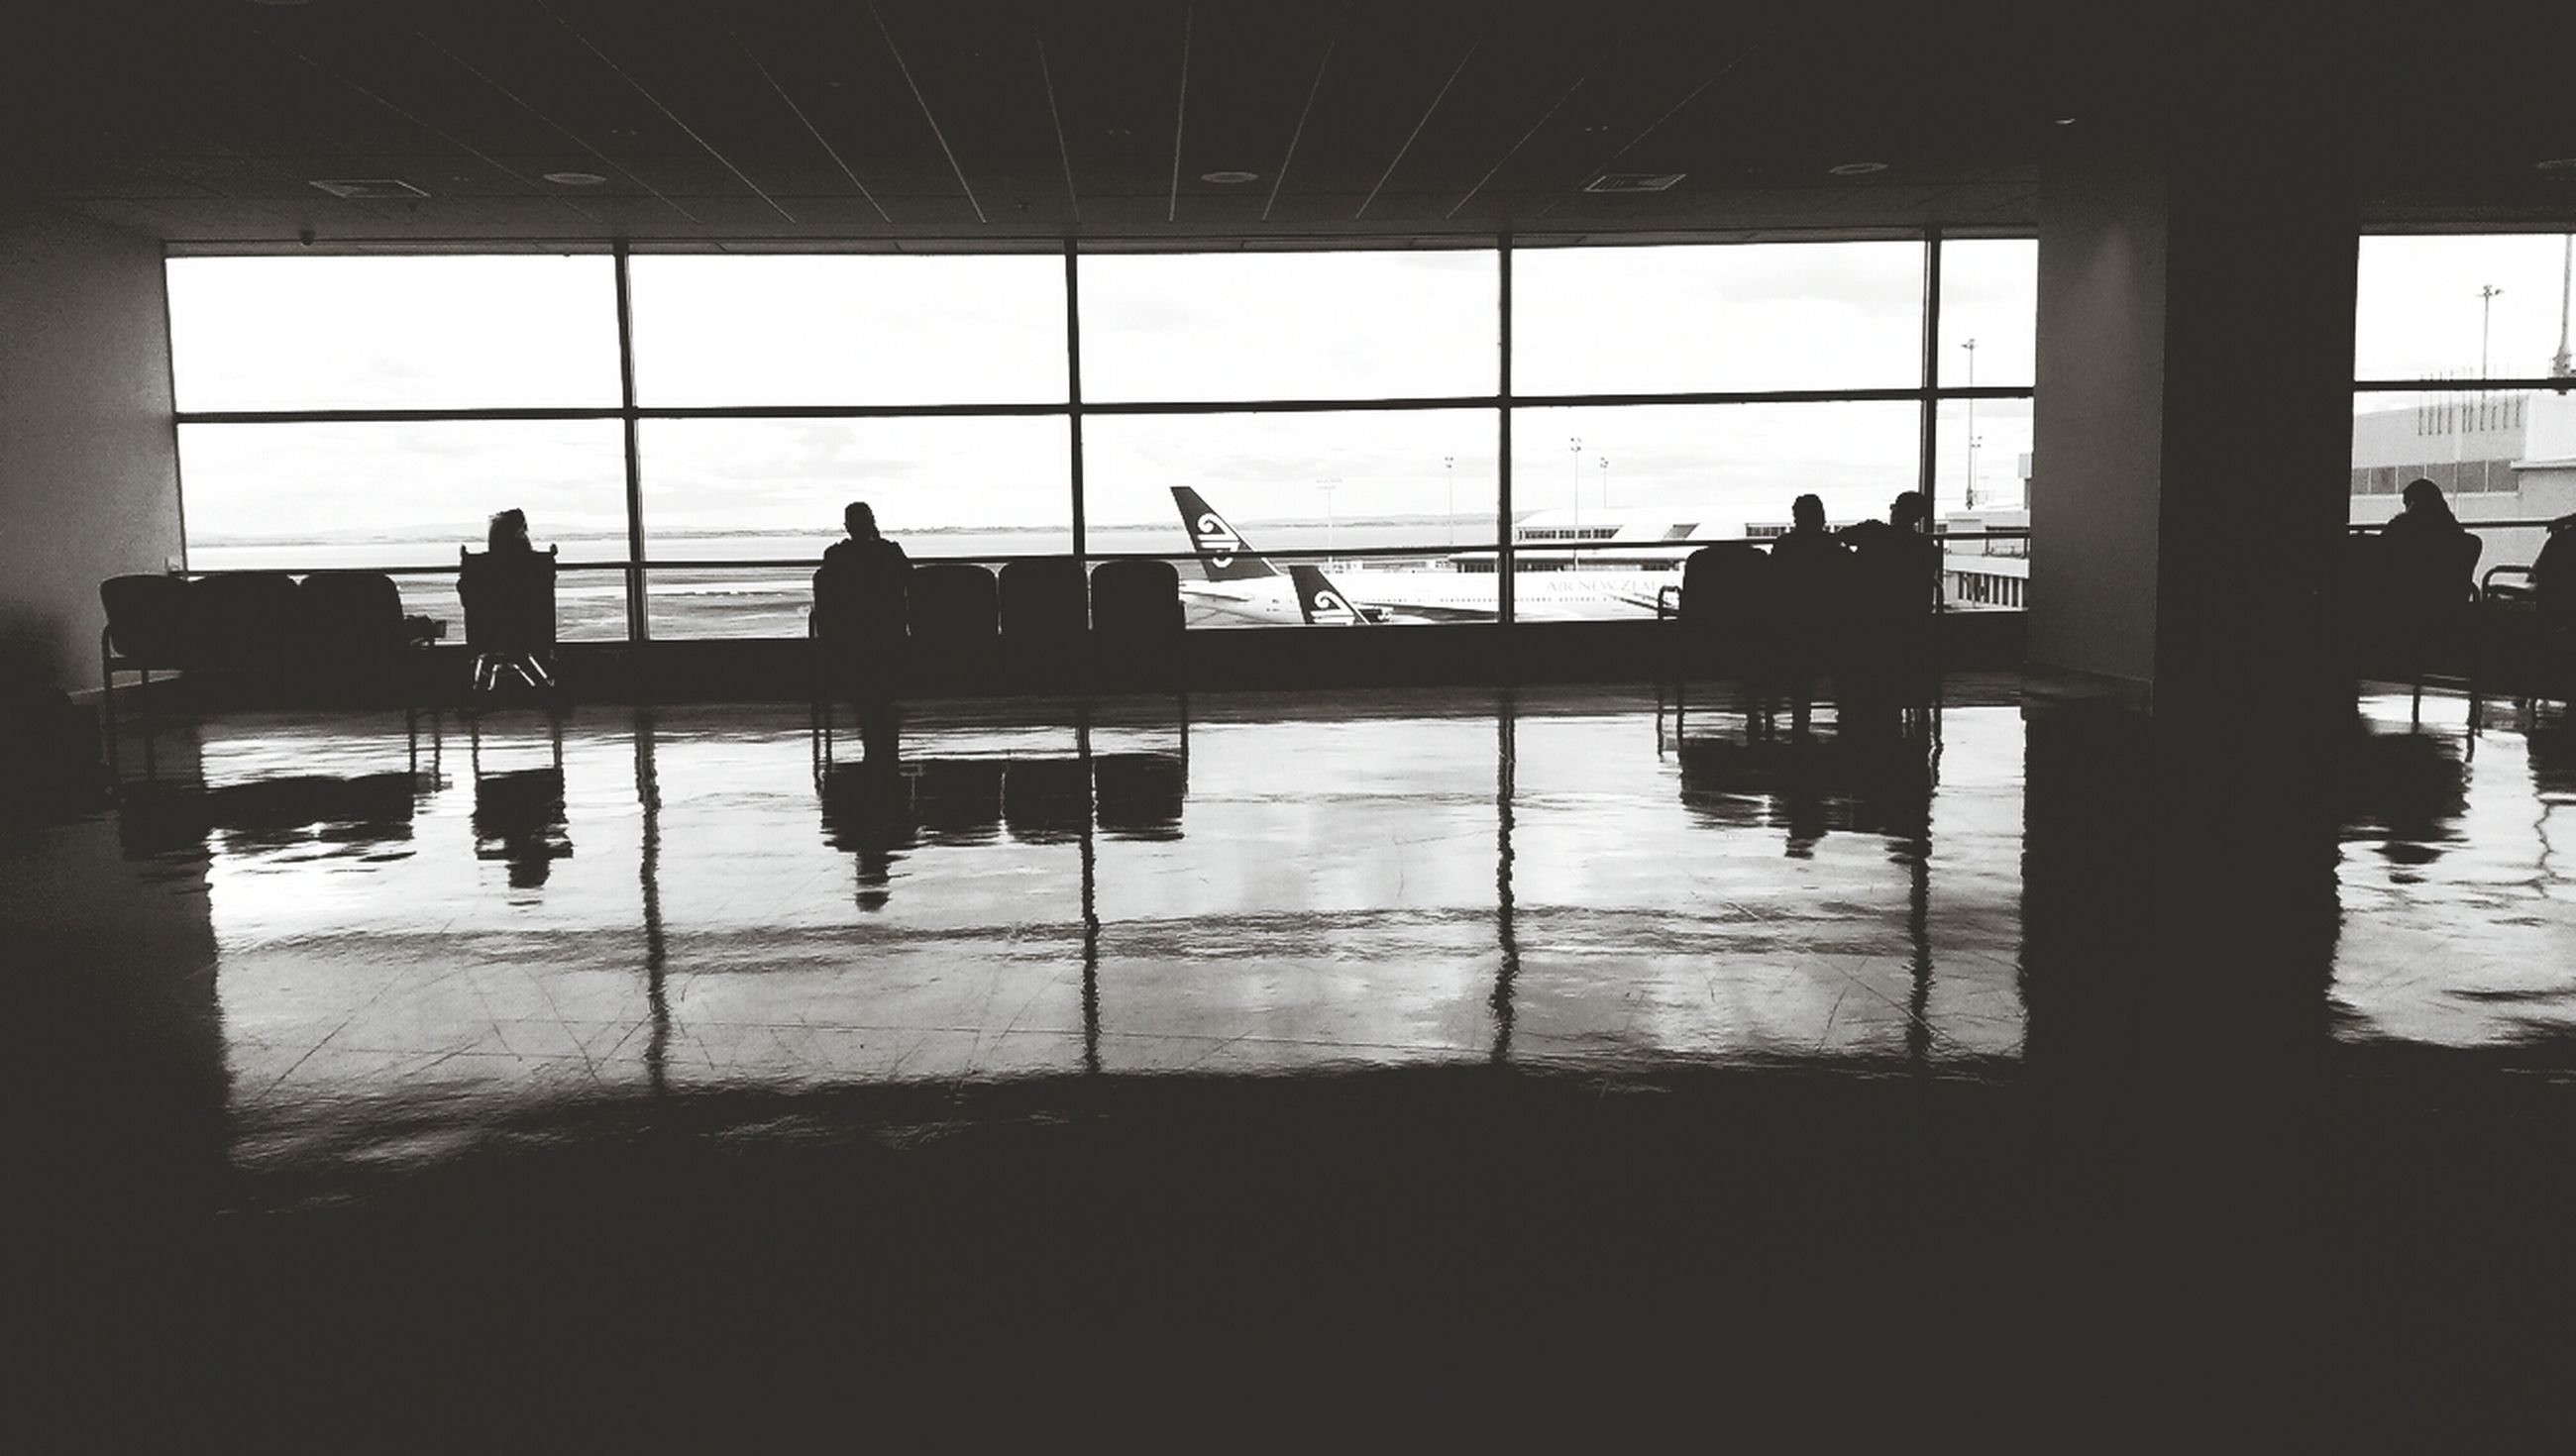 indoors, window, silhouette, glass - material, men, transparent, person, lifestyles, airport, medium group of people, leisure activity, built structure, sitting, unrecognizable person, travel, reflection, chair